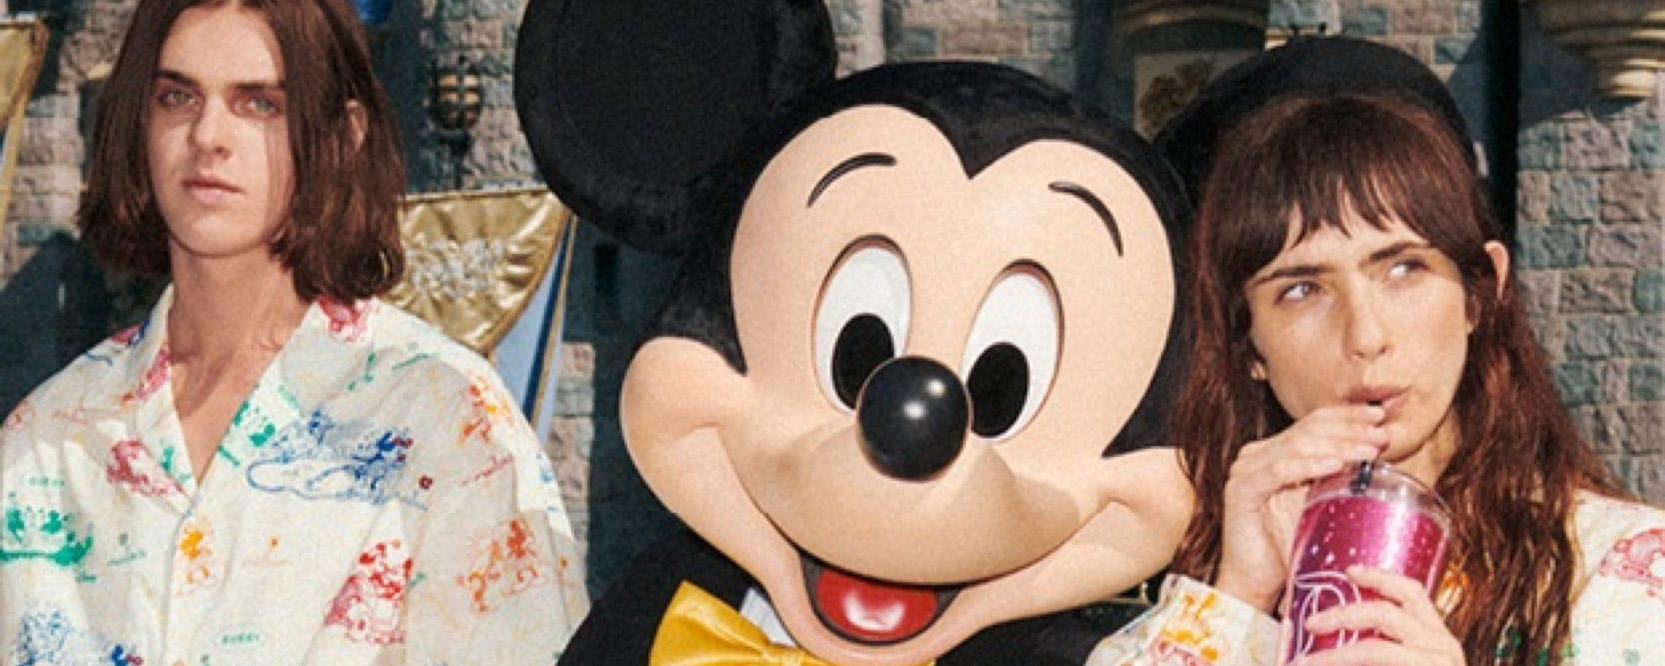 Mickey Mouse with two models